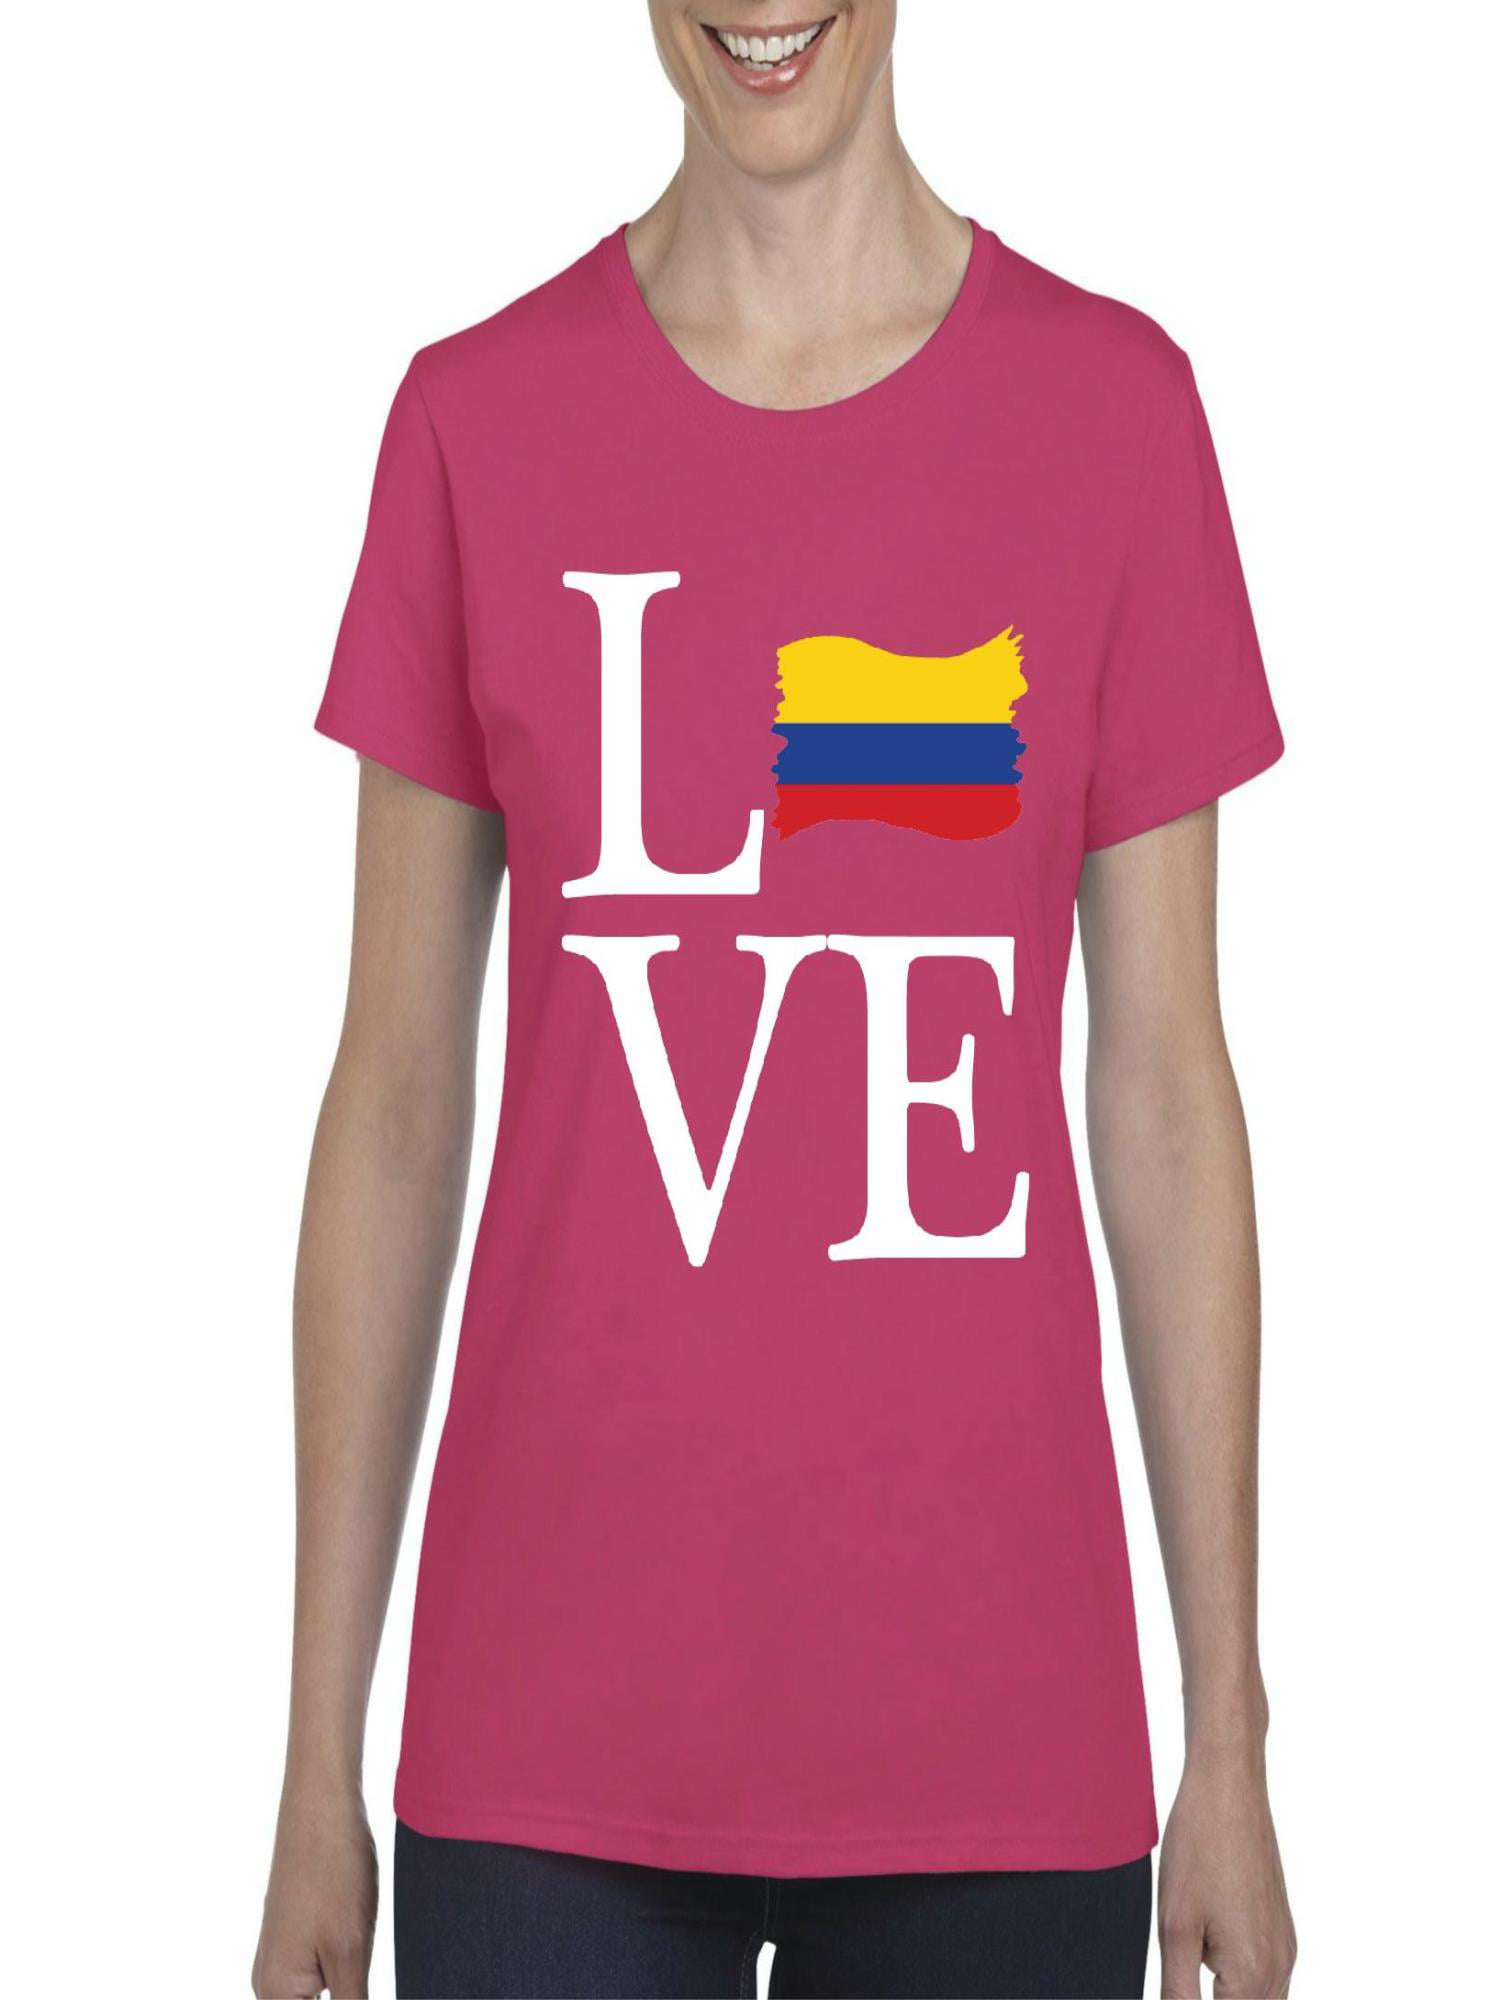 Proud To Be Colombian And Colombian Flag Toddler Kid T-shirt Tee 6mo Thru 7t